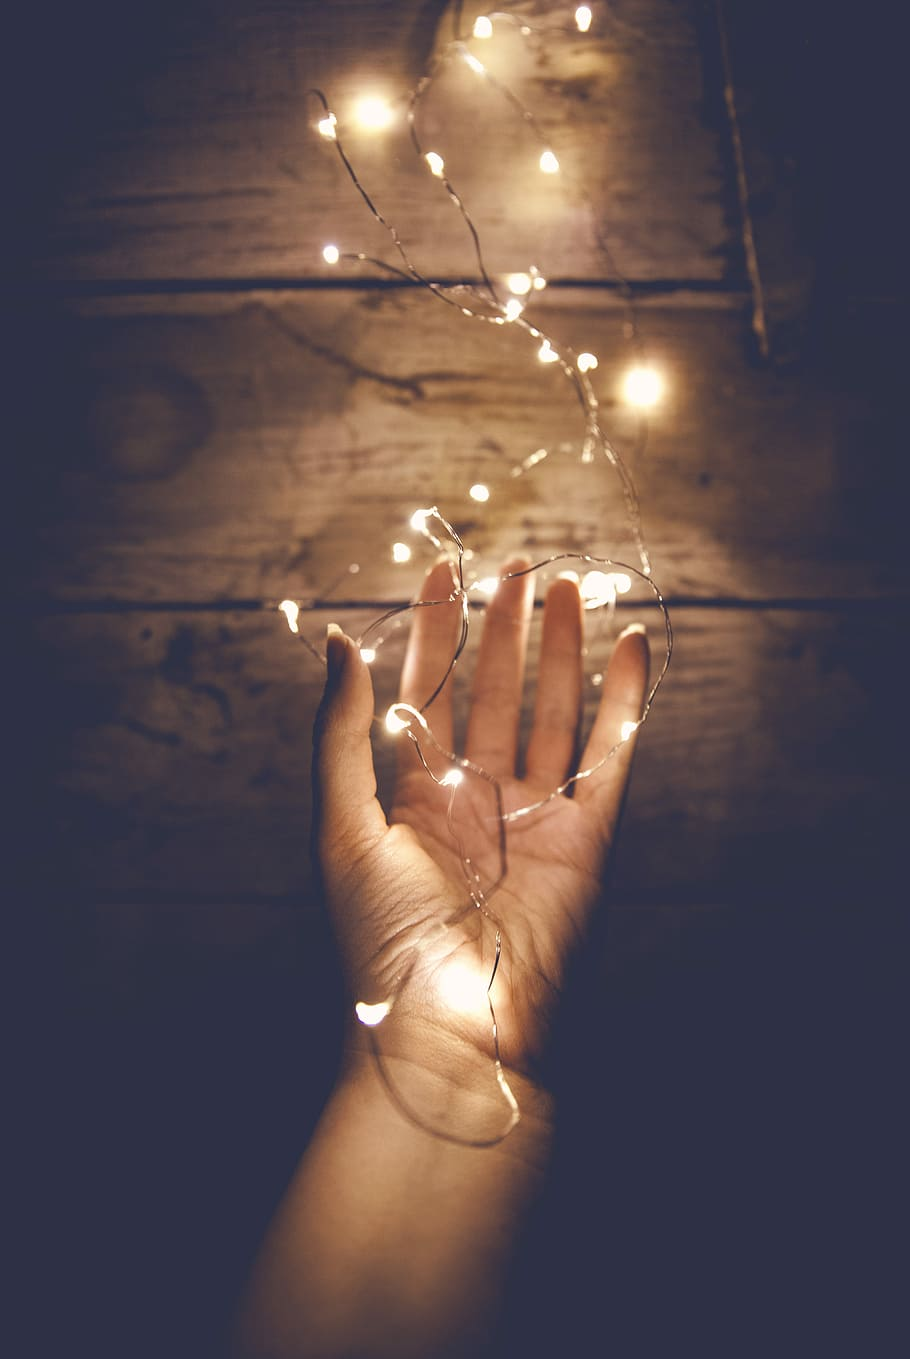 HD wallpaper person holding white string light person